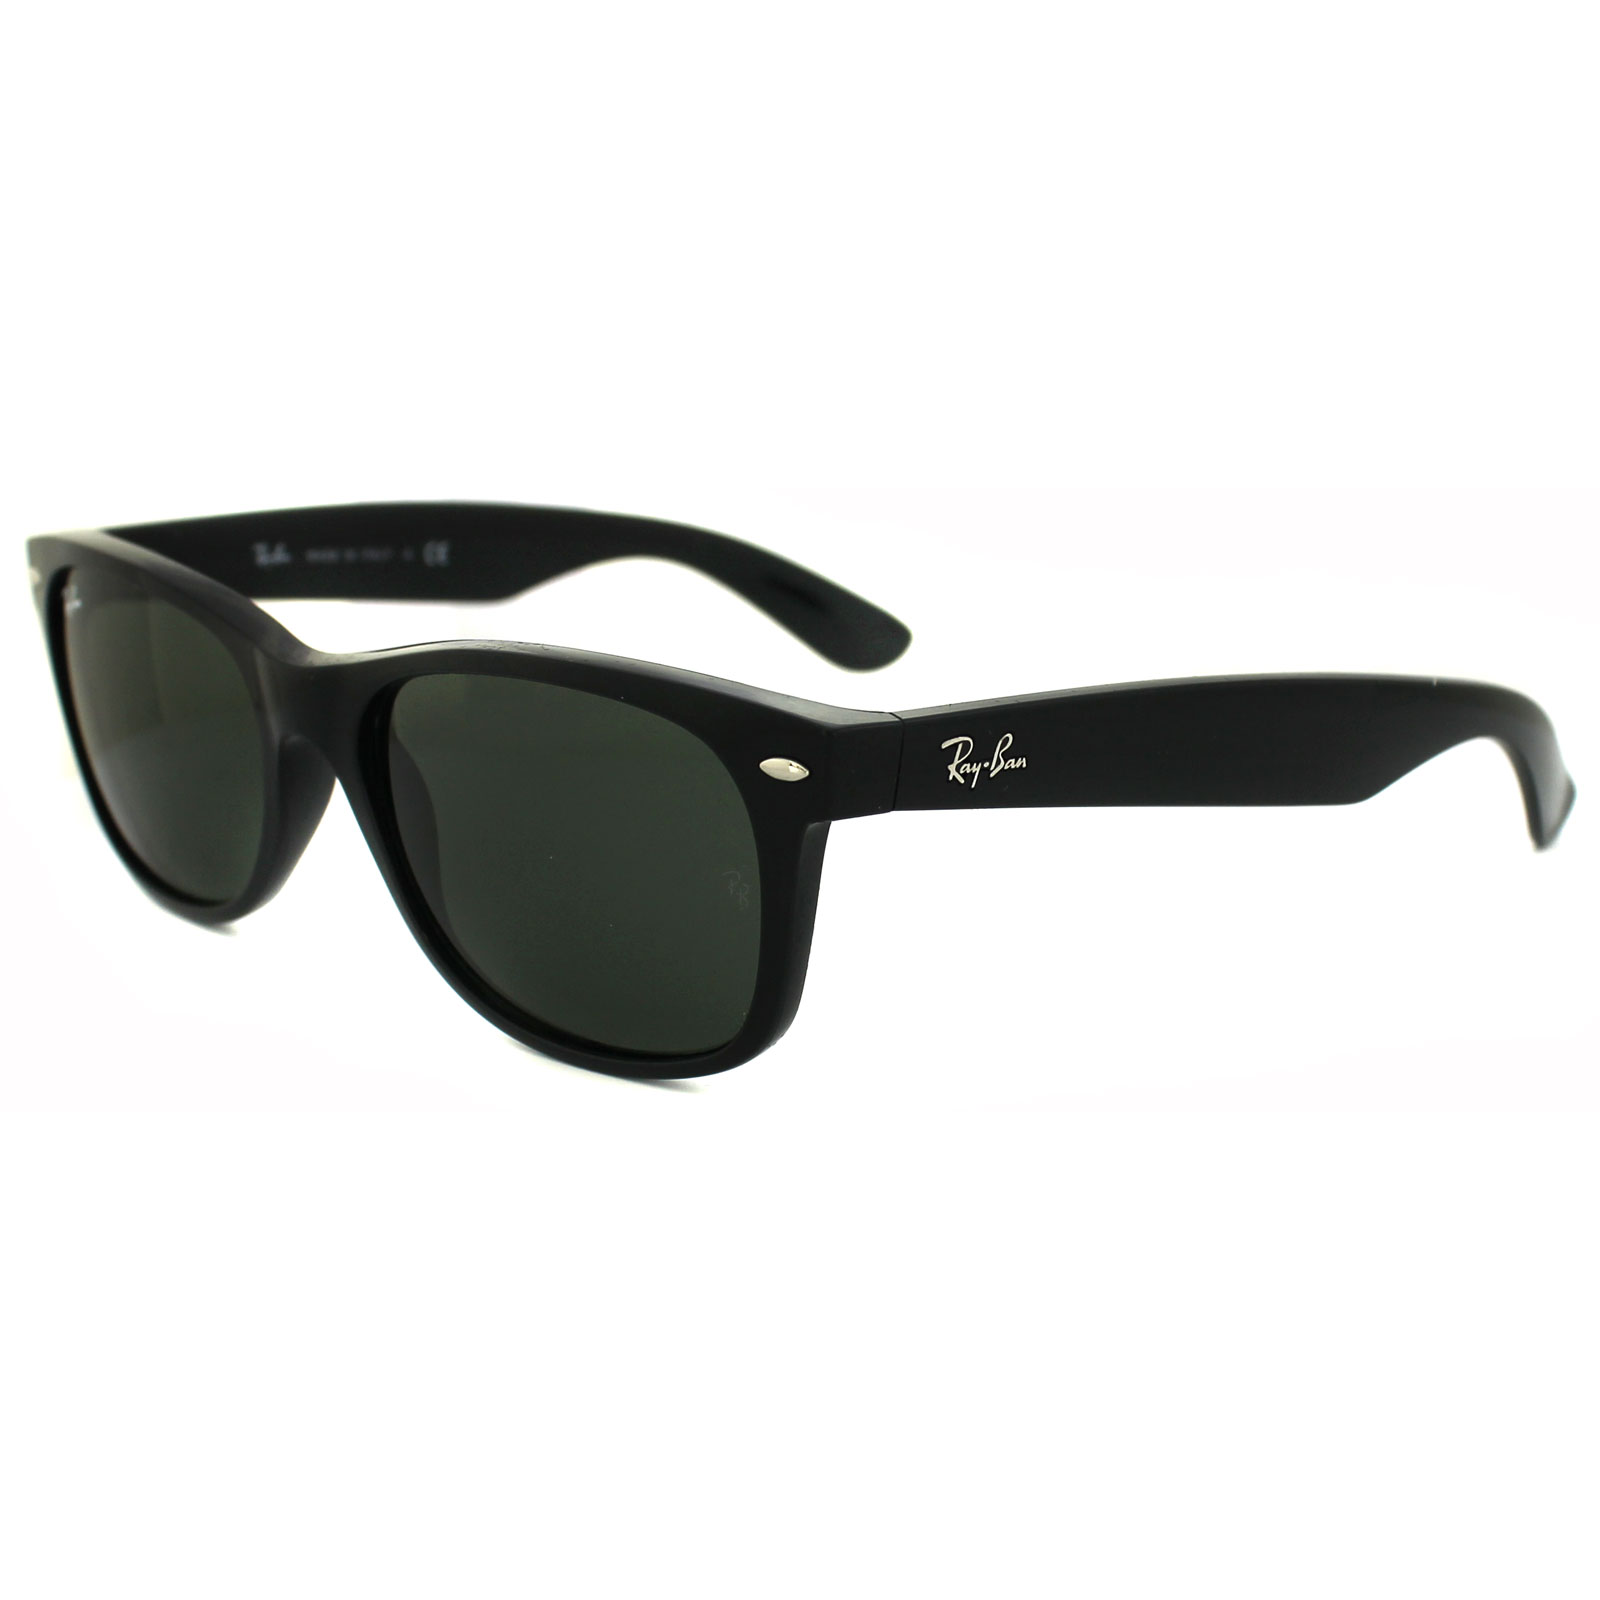 ray bans sunglasses for cheap  ray ban new wayfarer 2132 sunglasses